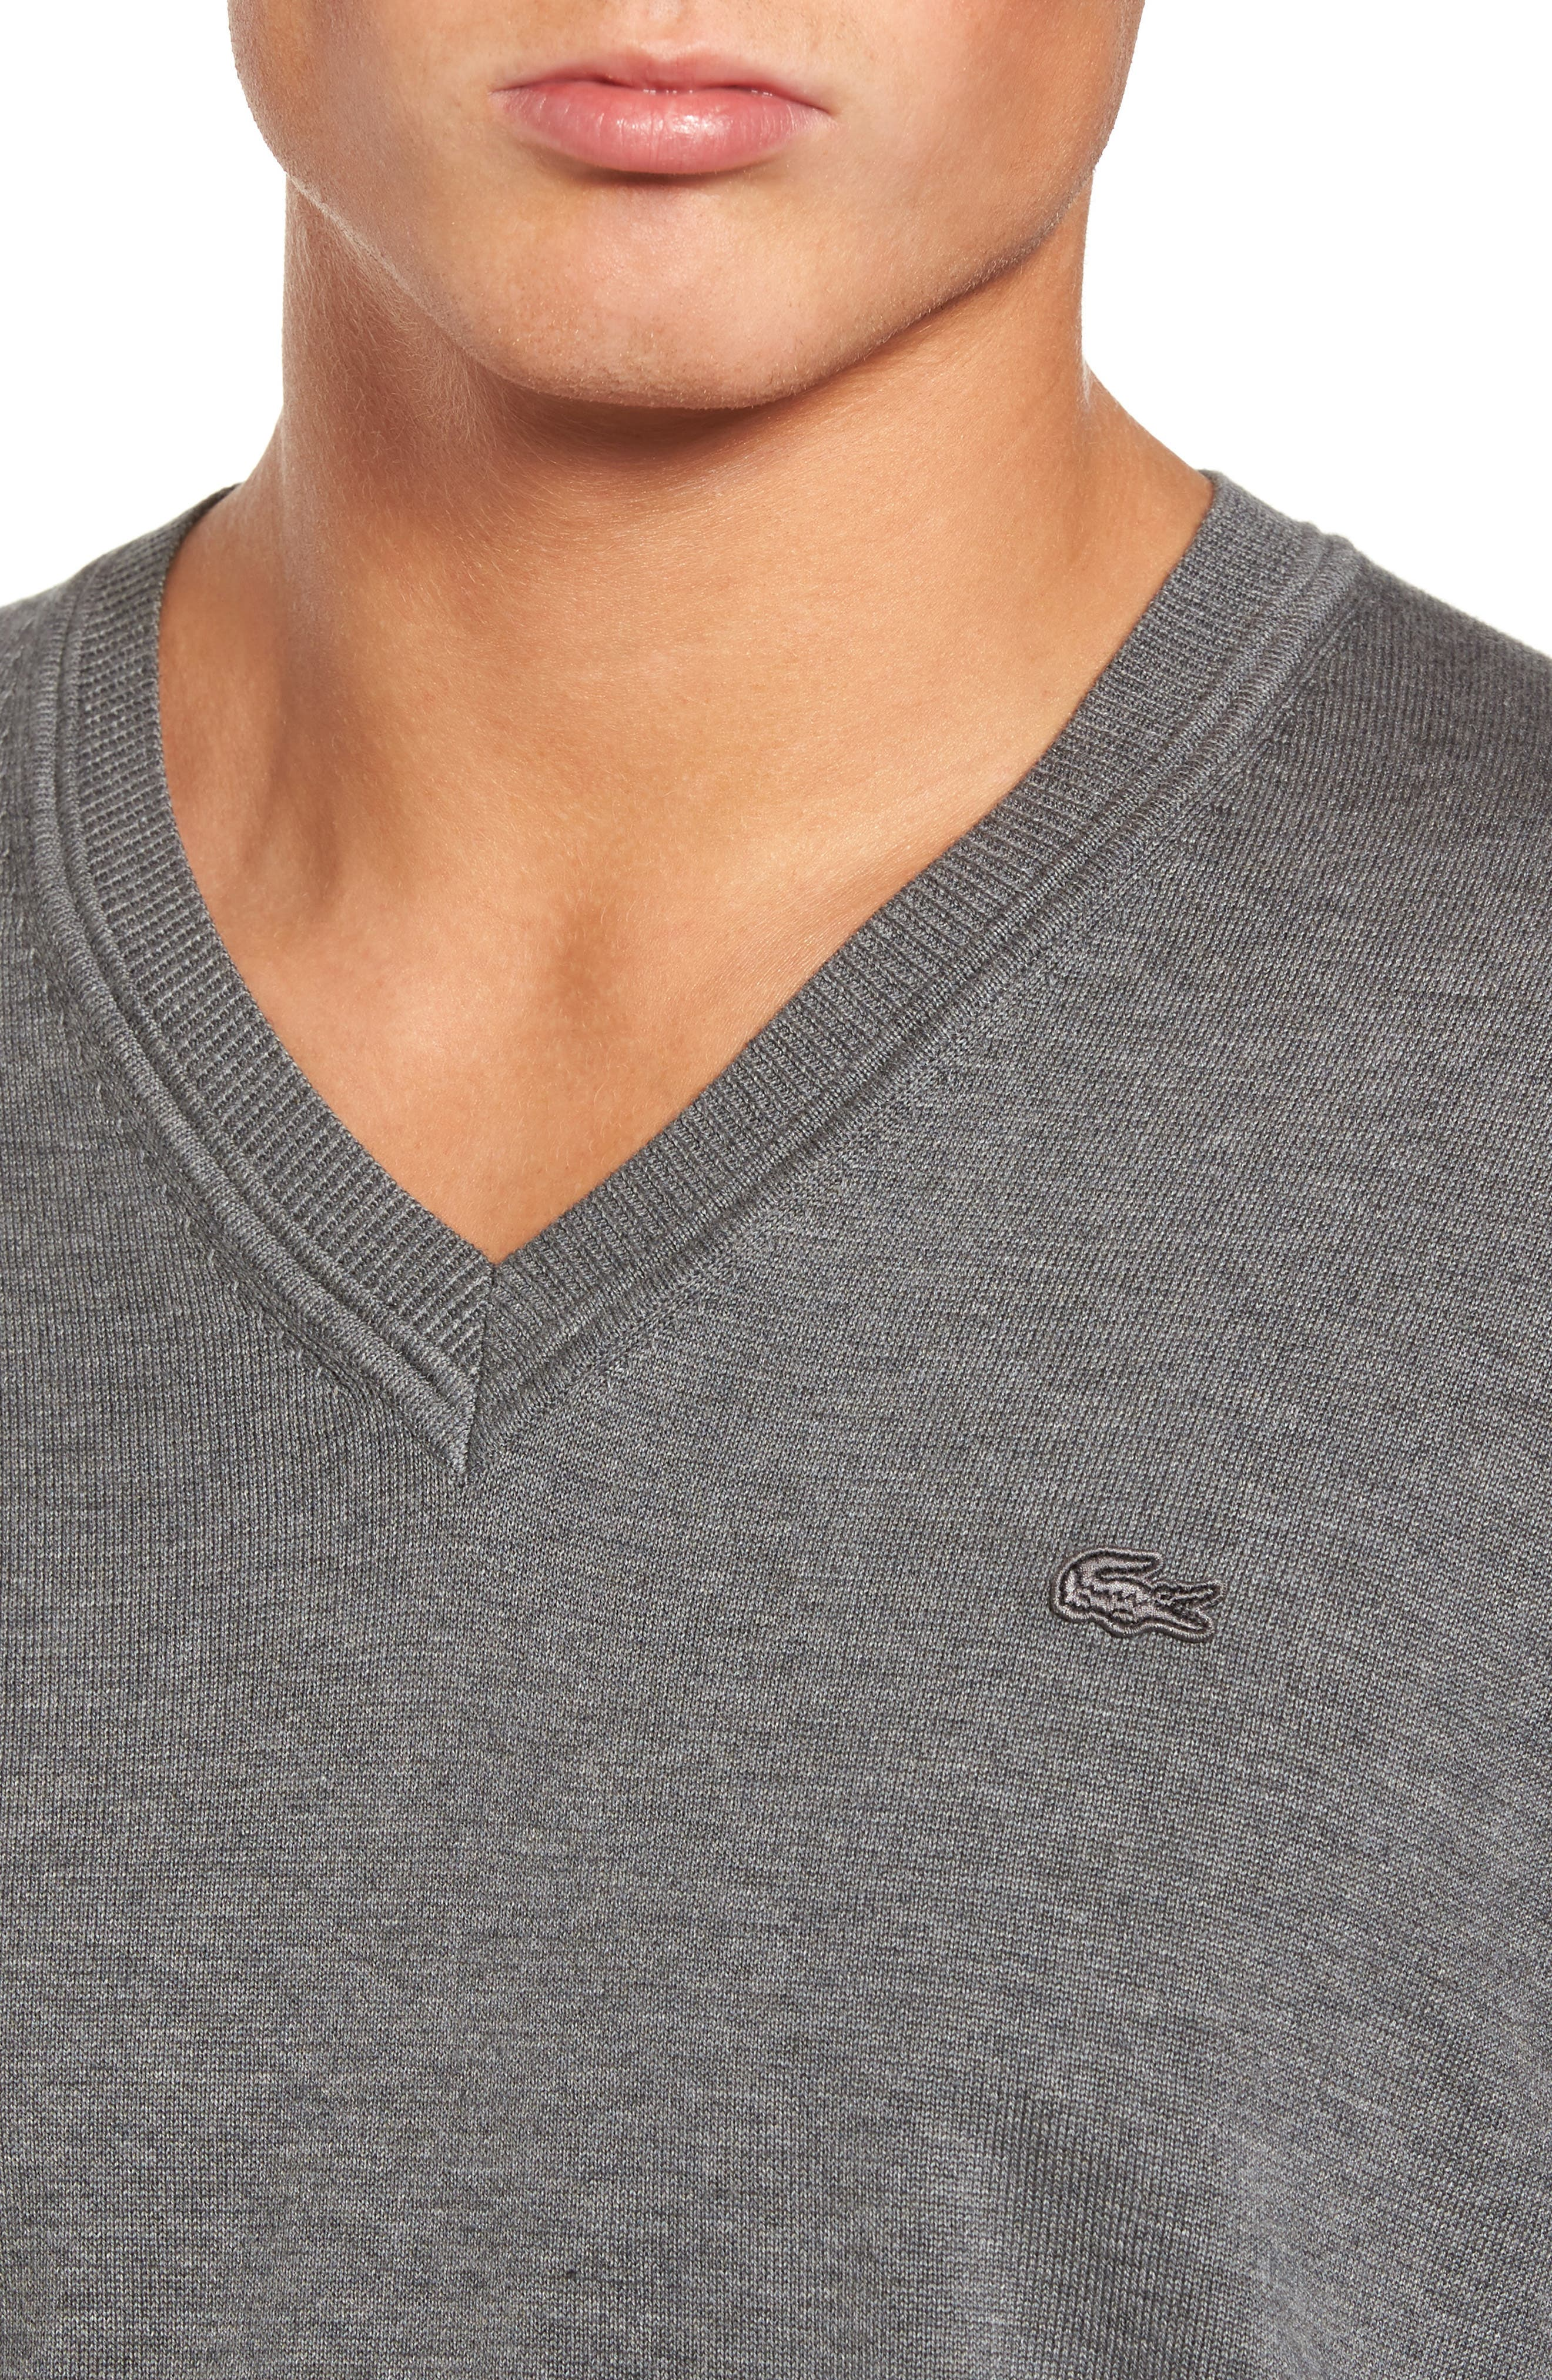 Cotton Jersey V-Neck Sweater,                             Alternate thumbnail 4, color,                             Galaxite